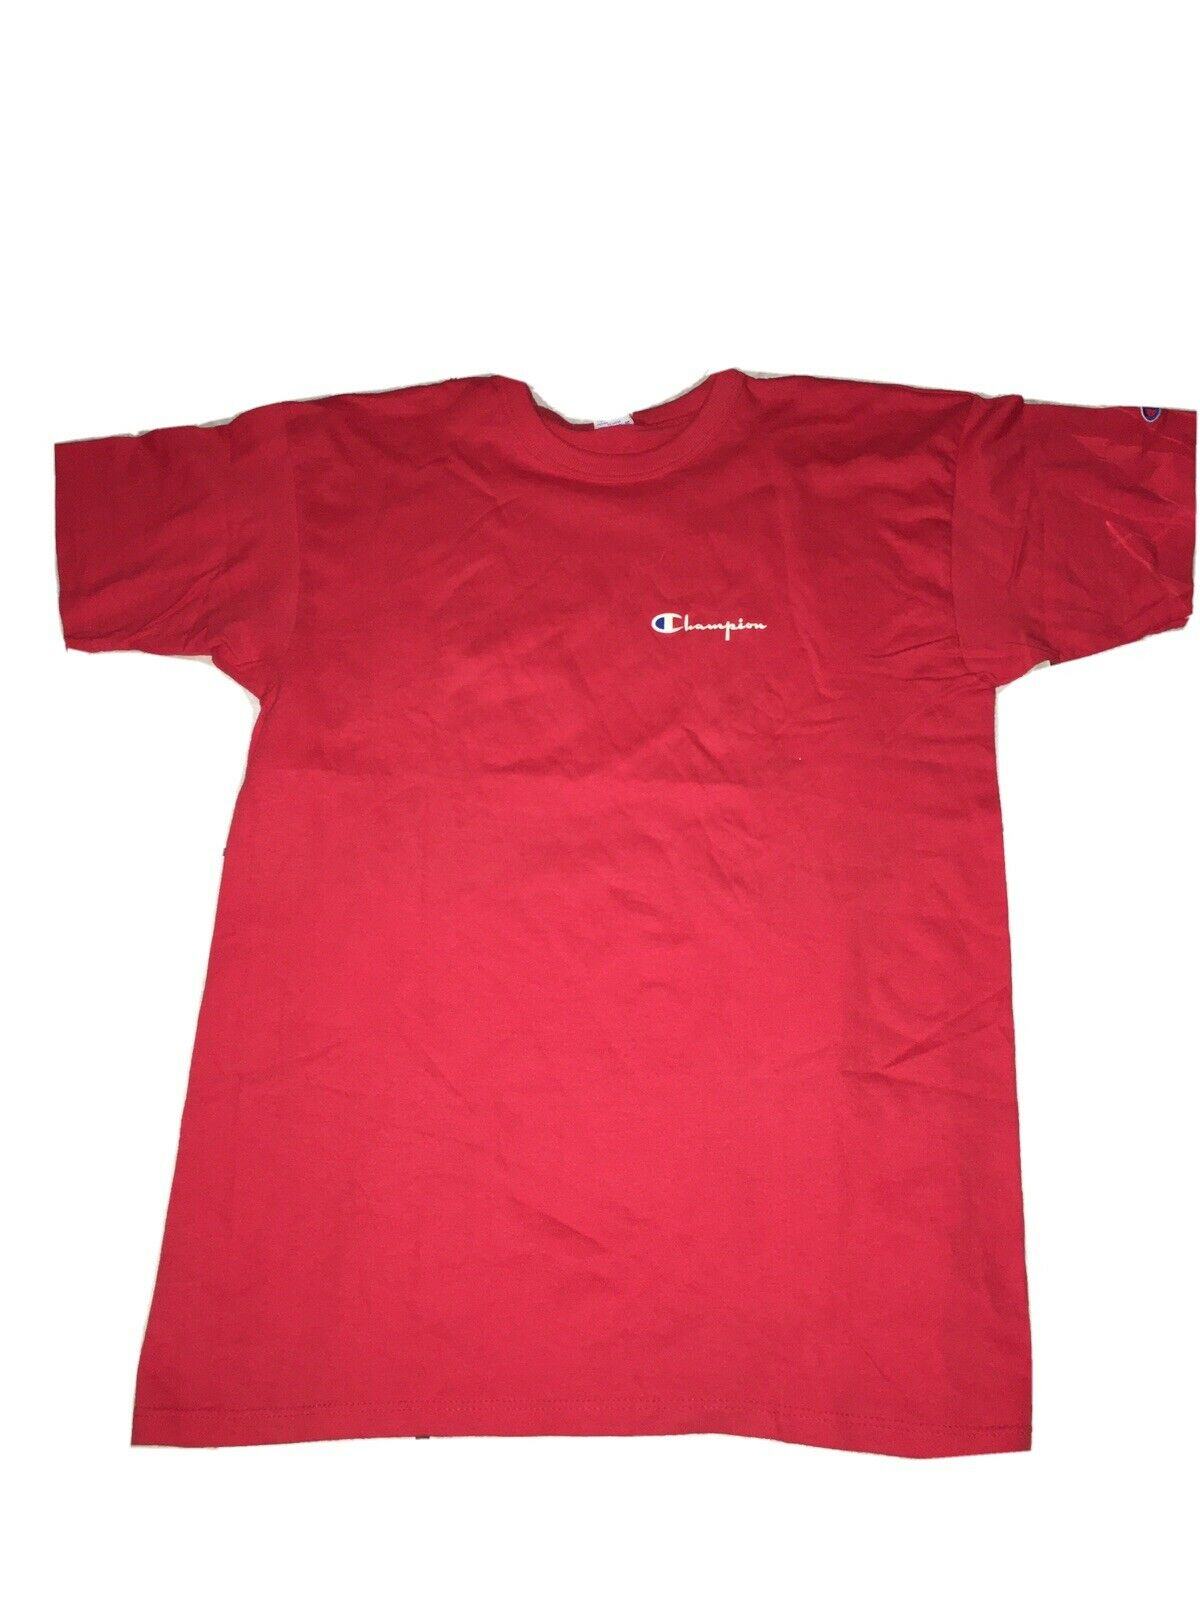 Vintage Champion T Shirt Mens Sz XL Made In USA Red Used Single Stitch